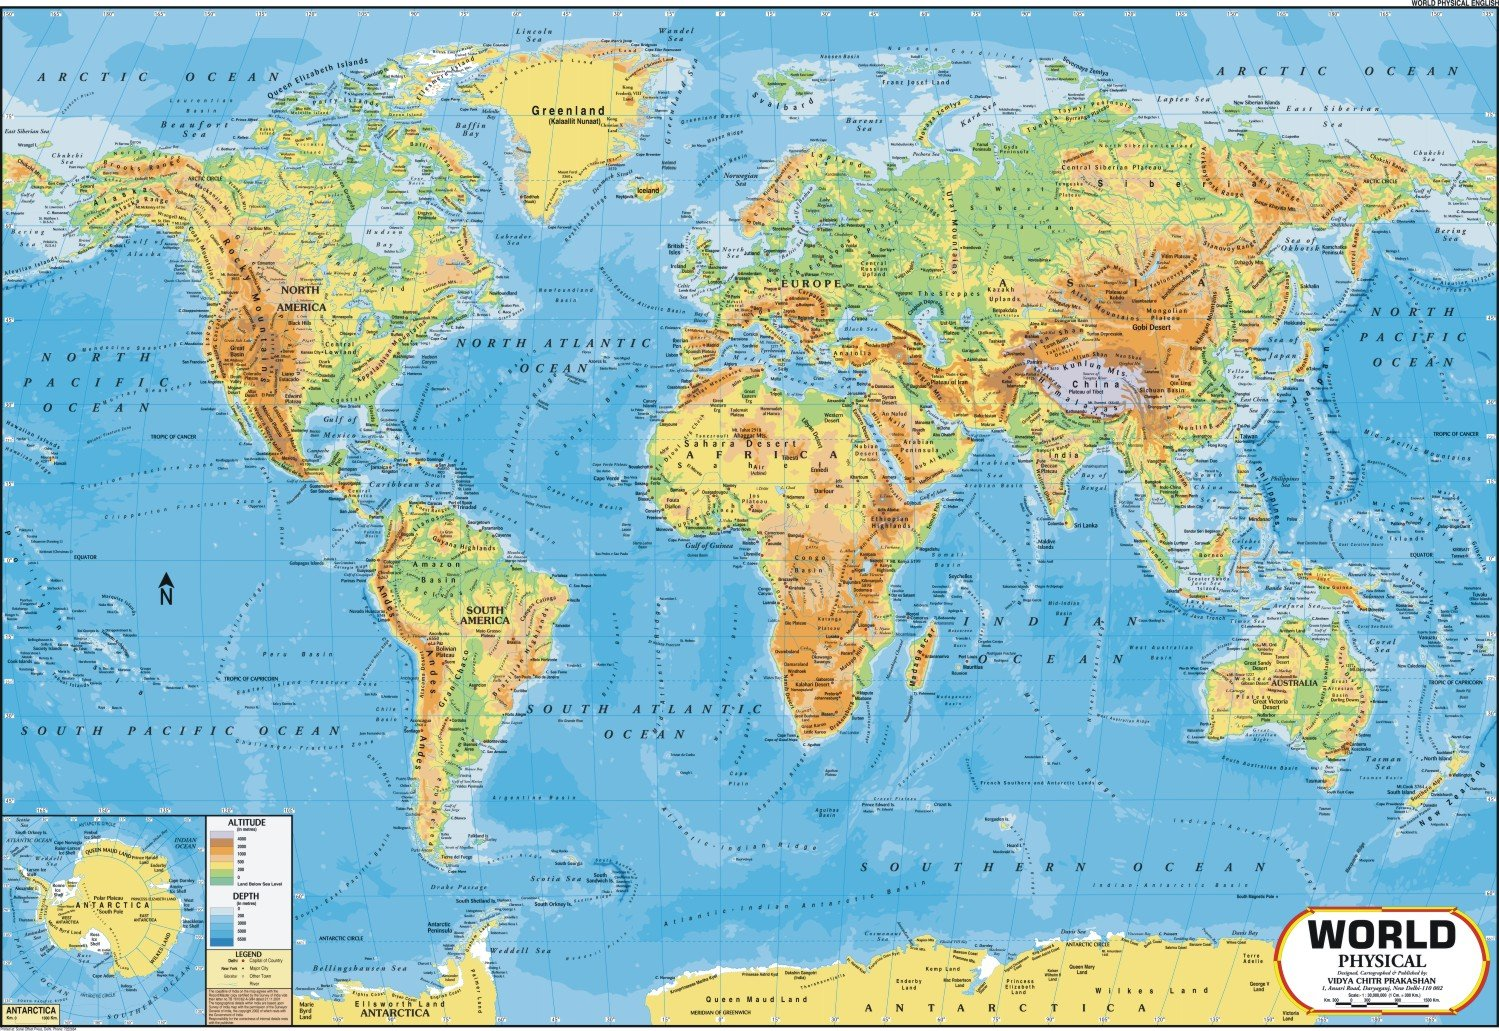 Buy world map physical 100 x 70 cm book online at low prices in buy world map physical 100 x 70 cm book online at low prices in india world map physical 100 x 70 cm reviews ratings amazon gumiabroncs Gallery